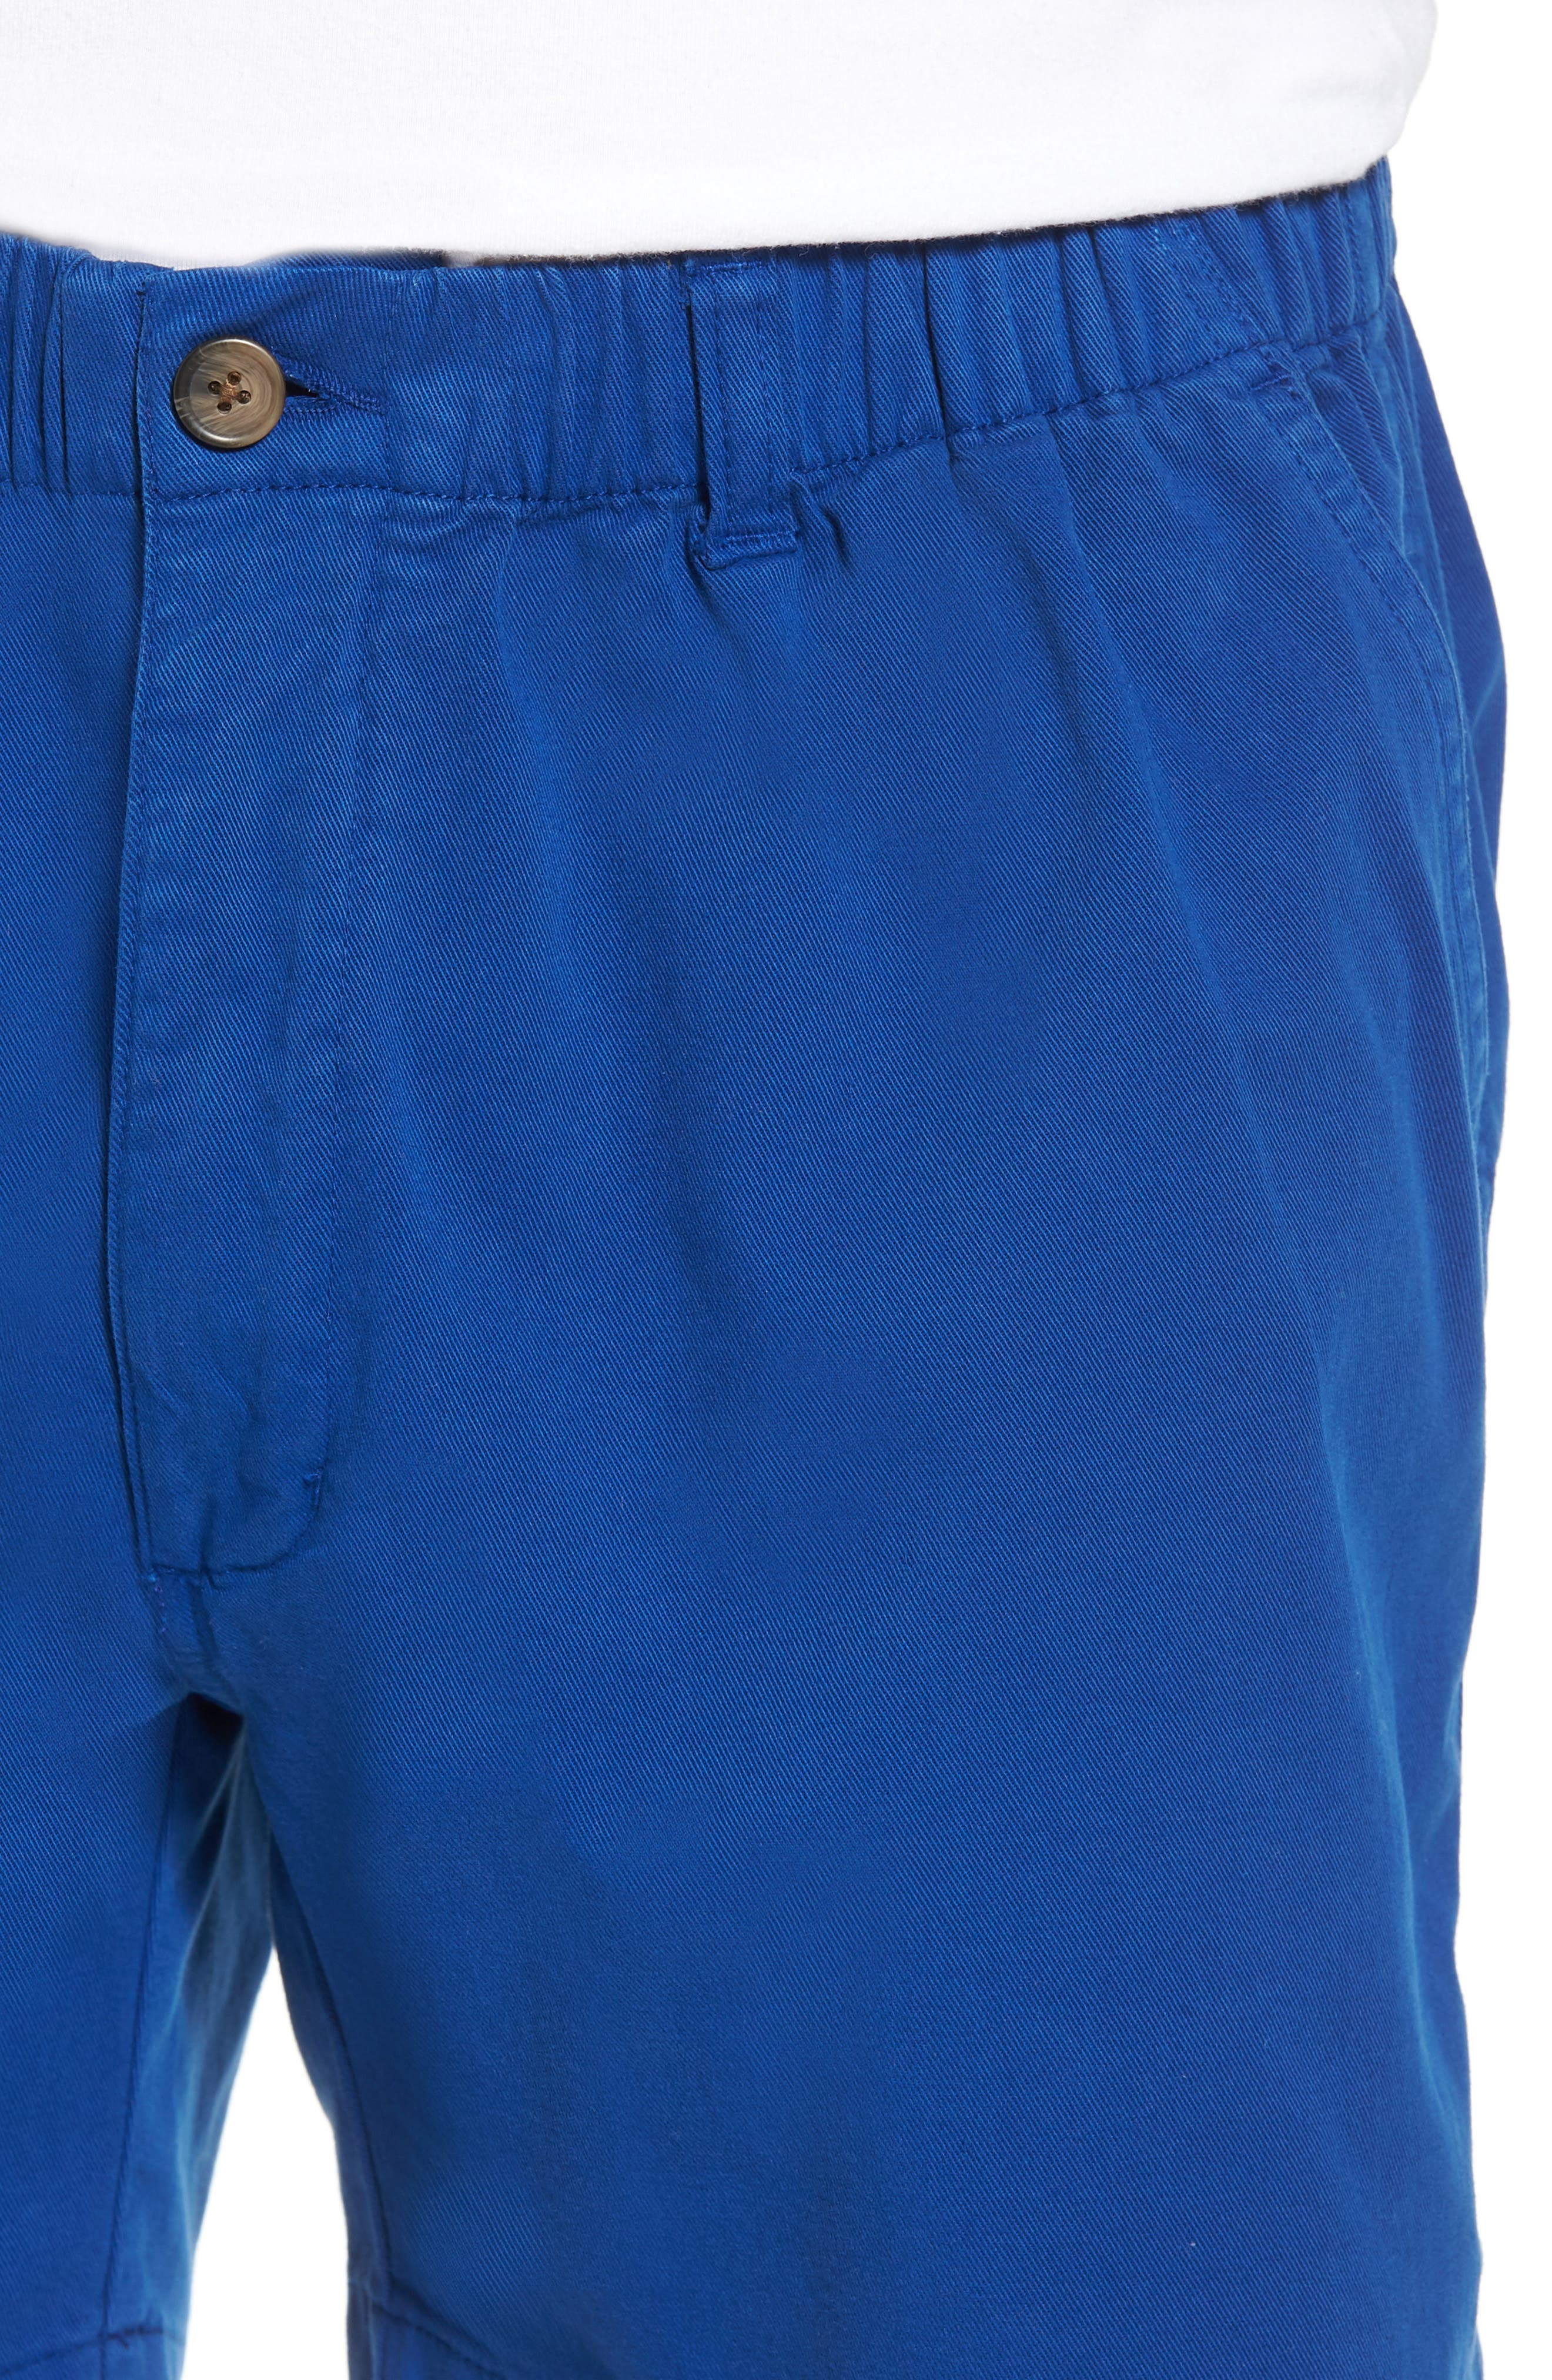 Snappers Elastic Waist 5.5 Inch Stretch Shorts,                             Alternate thumbnail 4, color,                             PREP BLUE